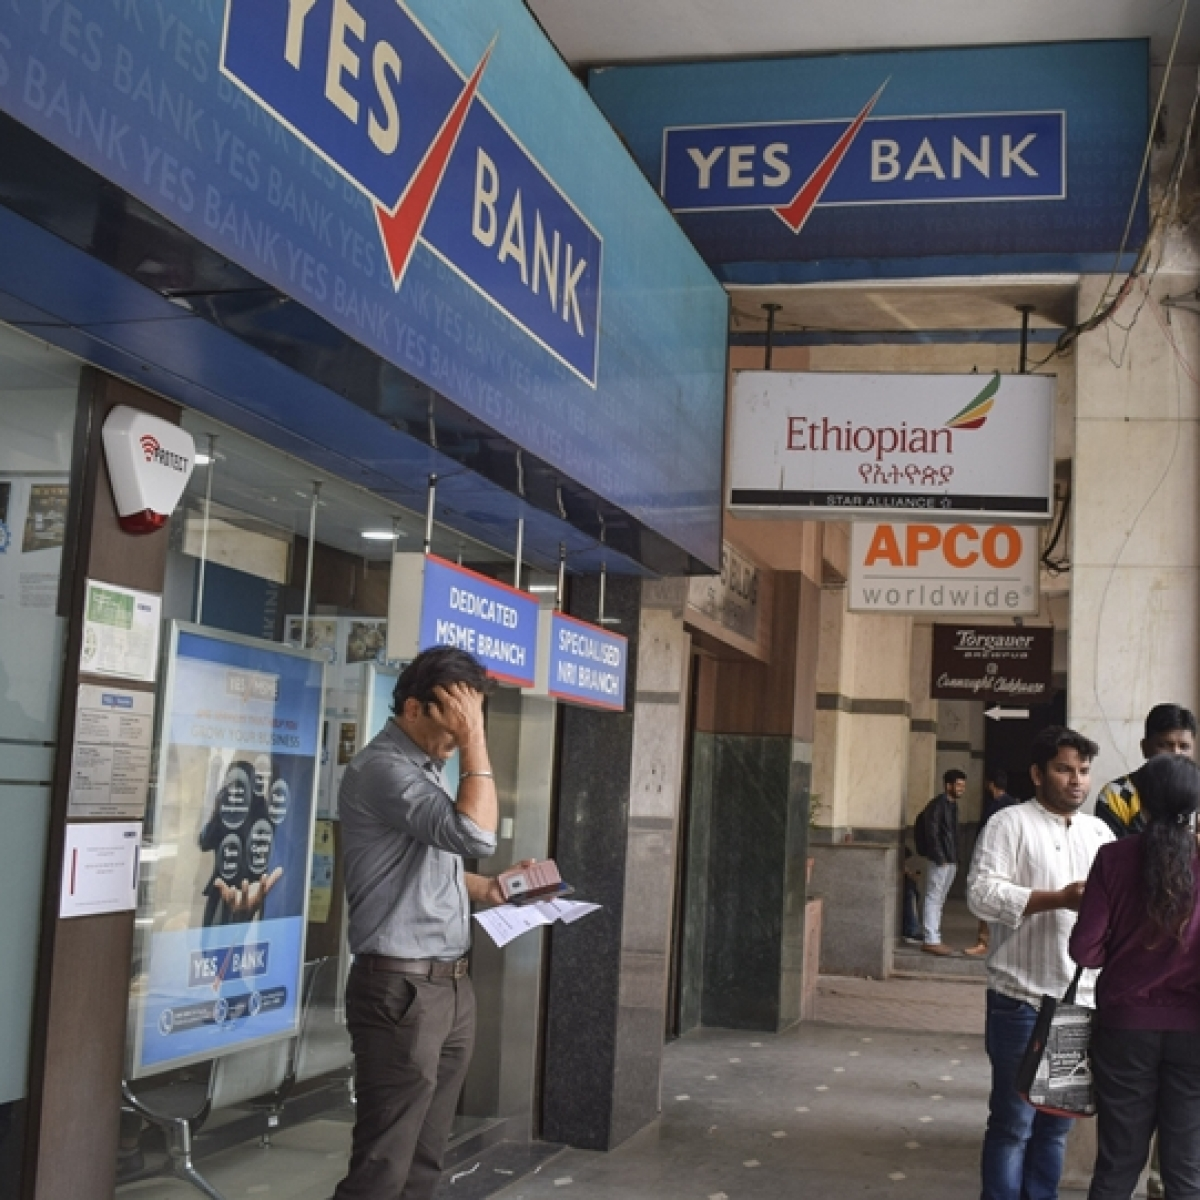 YES Bank ATMs full of cash: Rana Kumar